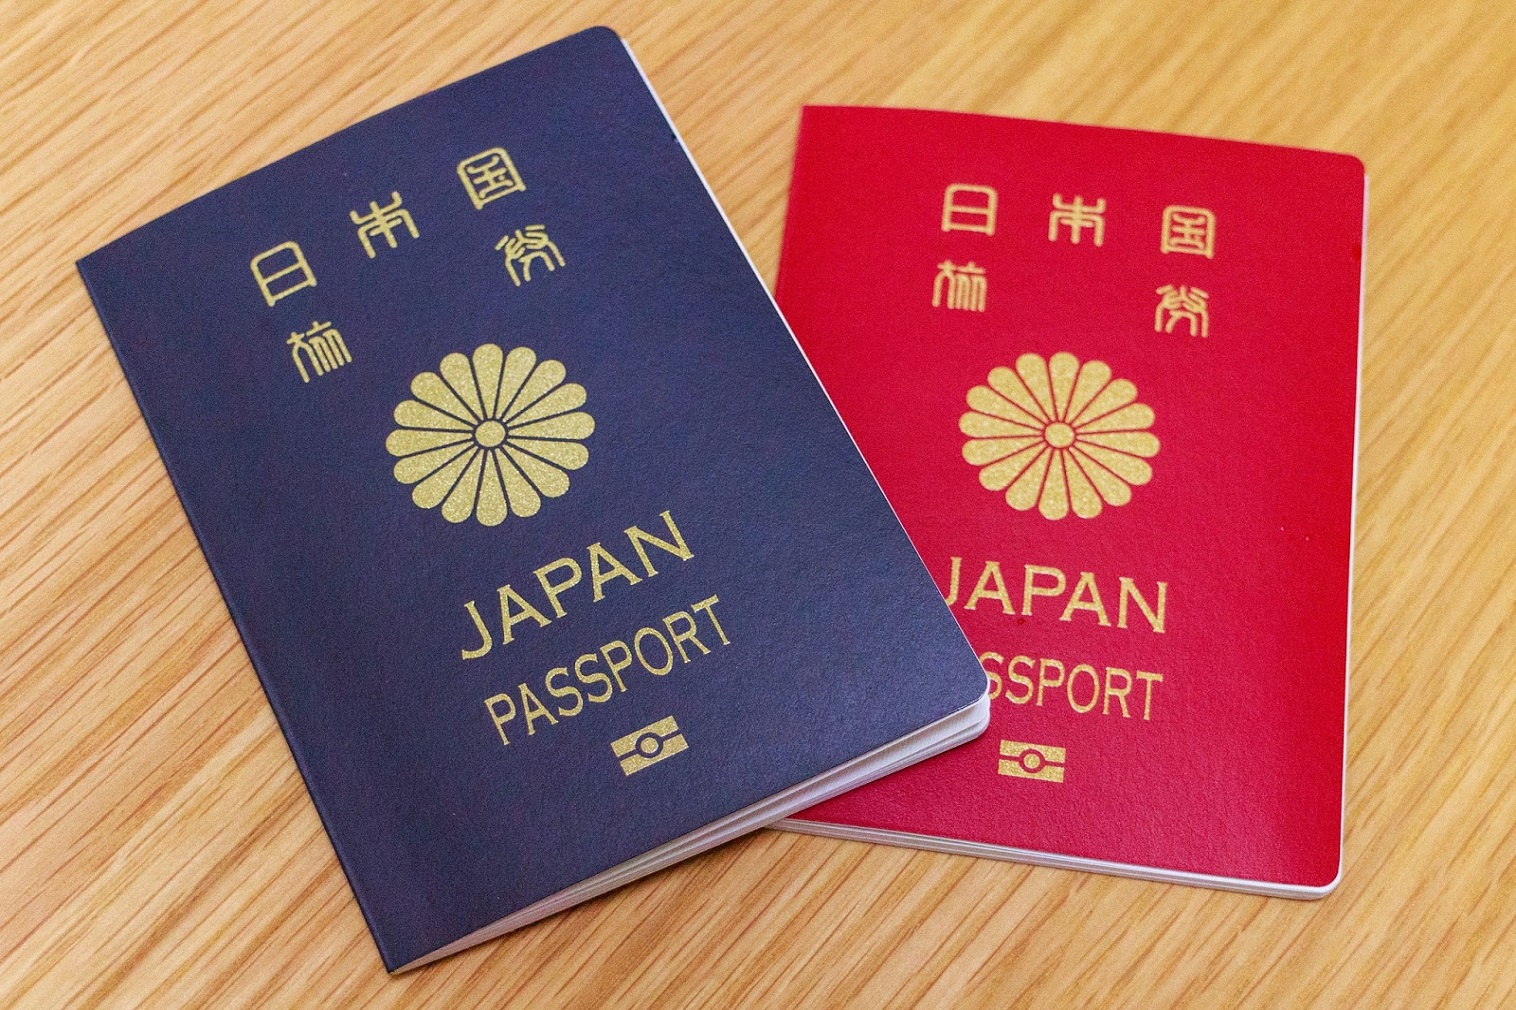 Japan firmly holds onto the number one spot on the index — which is based on exclusive data from the International Air Transport Association (IATA) — with Japanese passport holders theoretically able to access a record 193 destinations around the world visa-free.